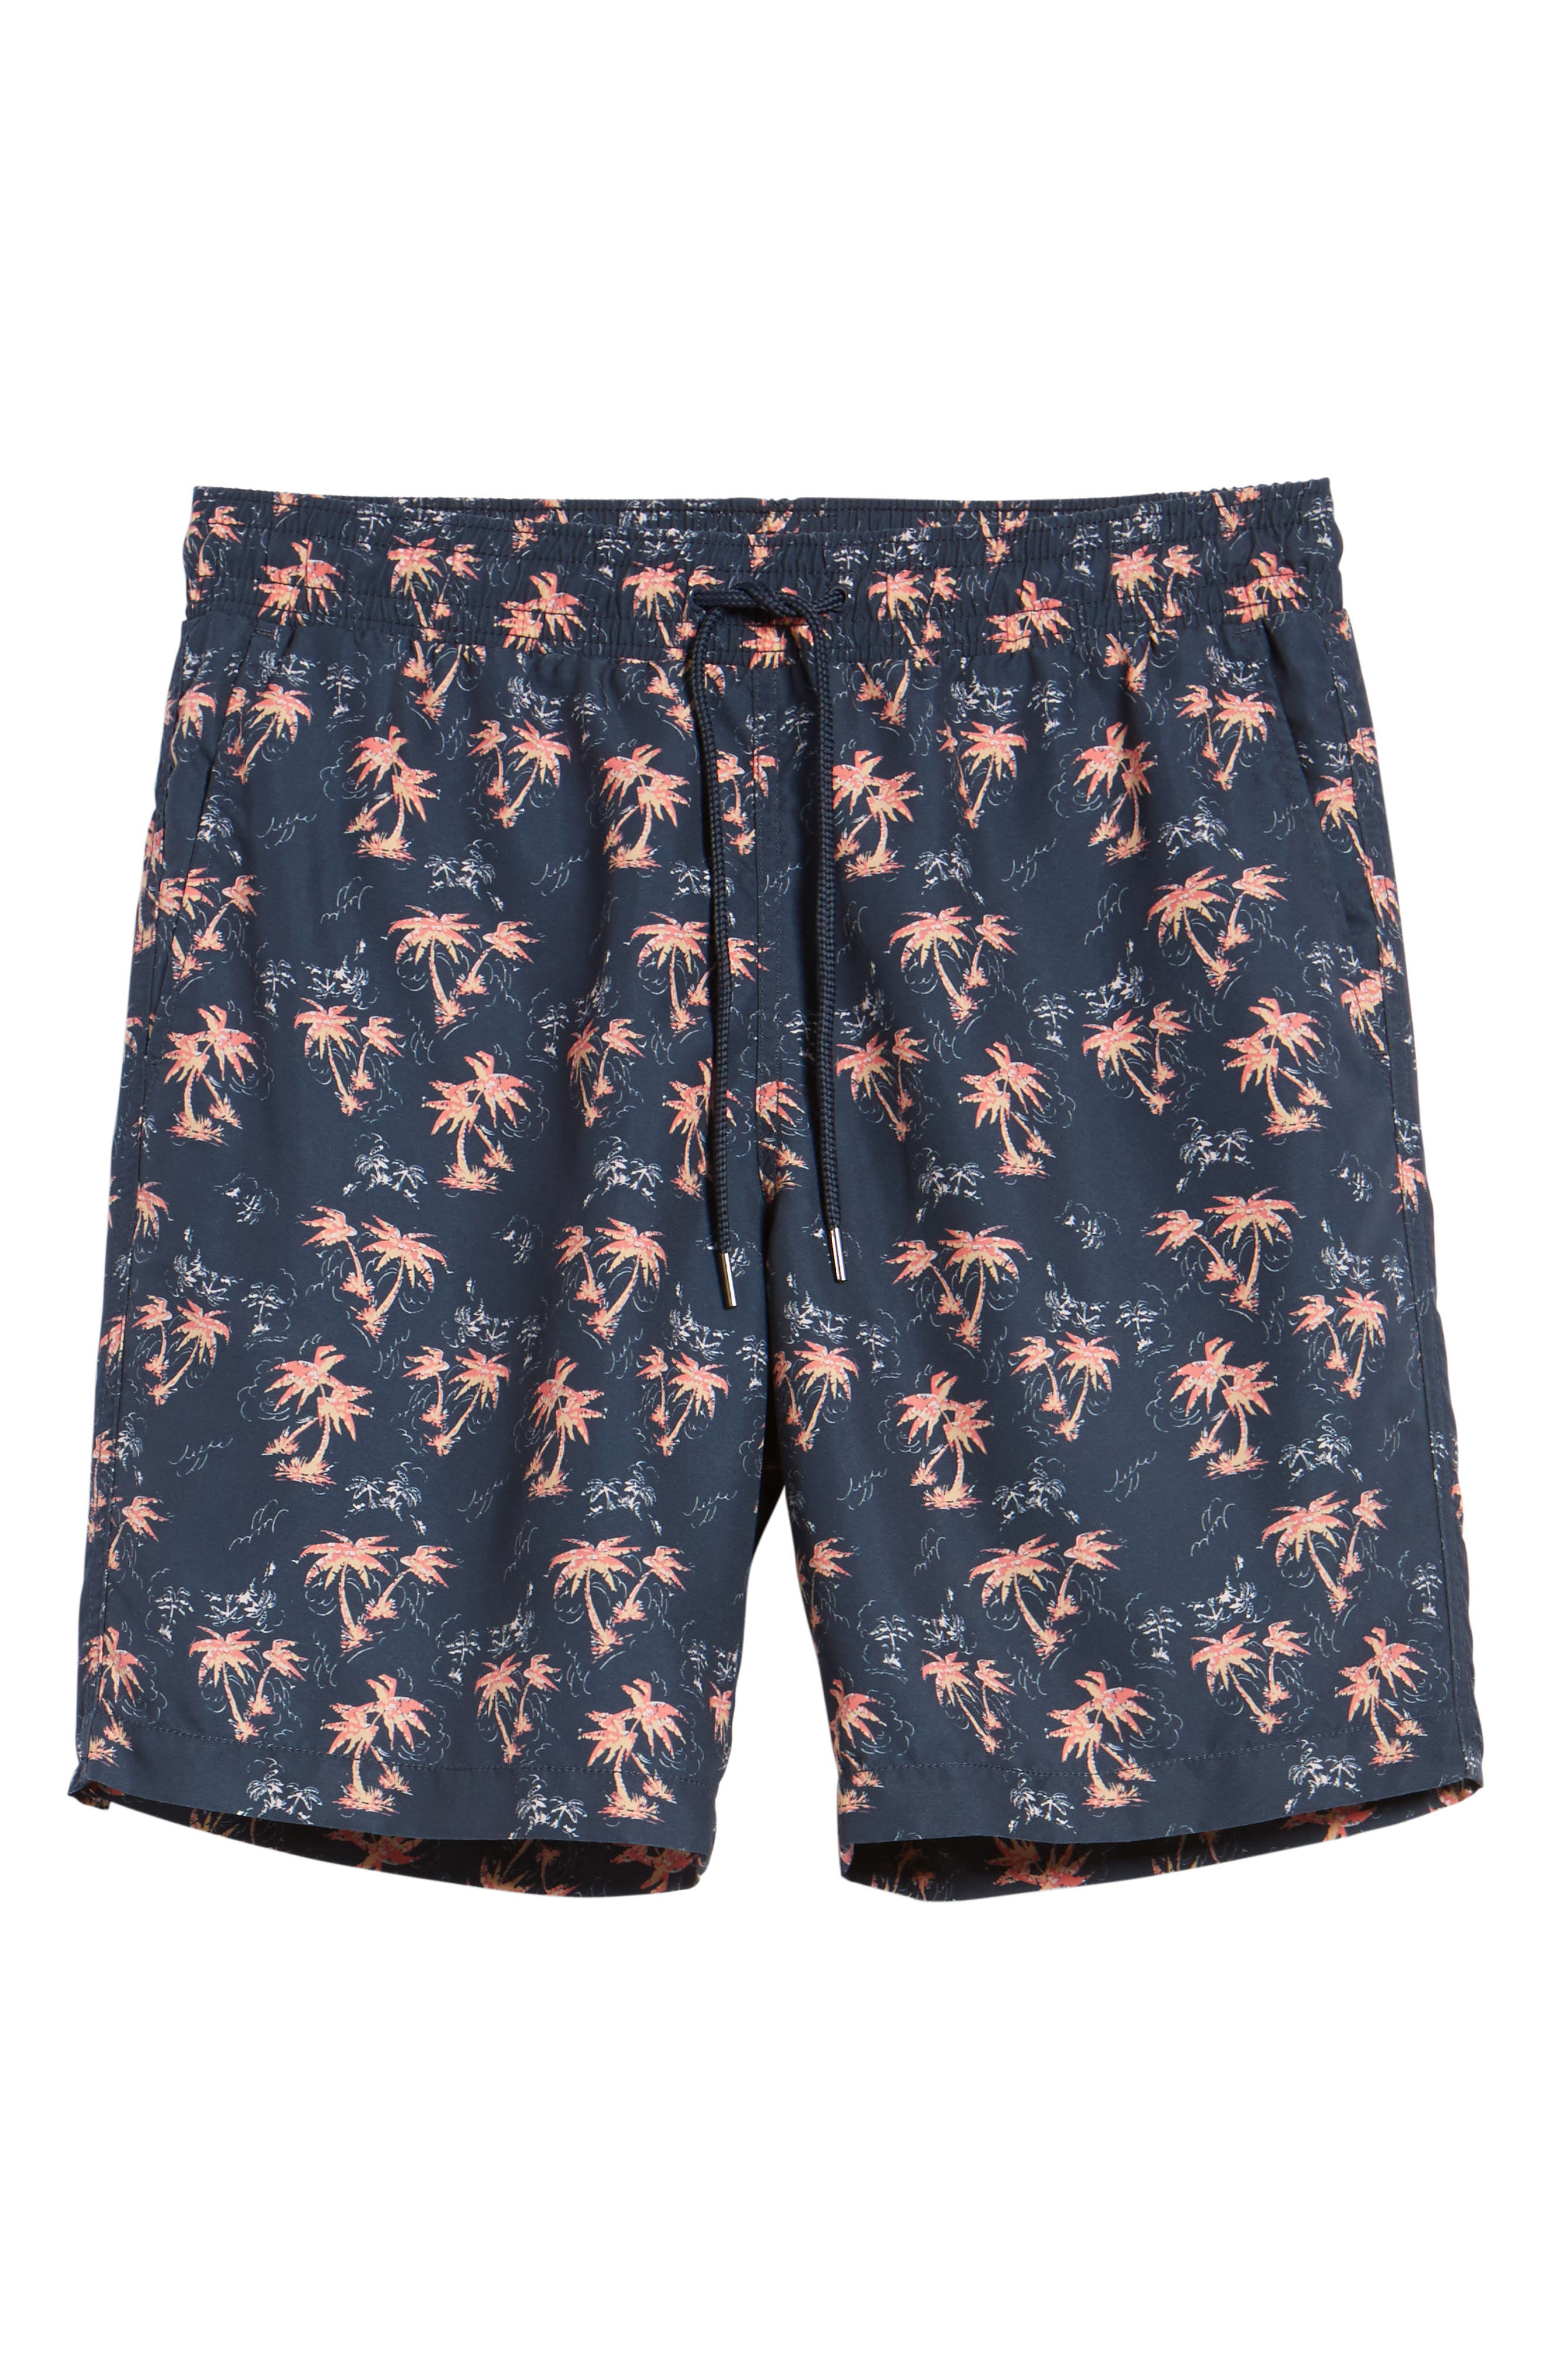 Burning Palm Swim Trunks,                             Alternate thumbnail 6, color,                             Carbon Spice Coral